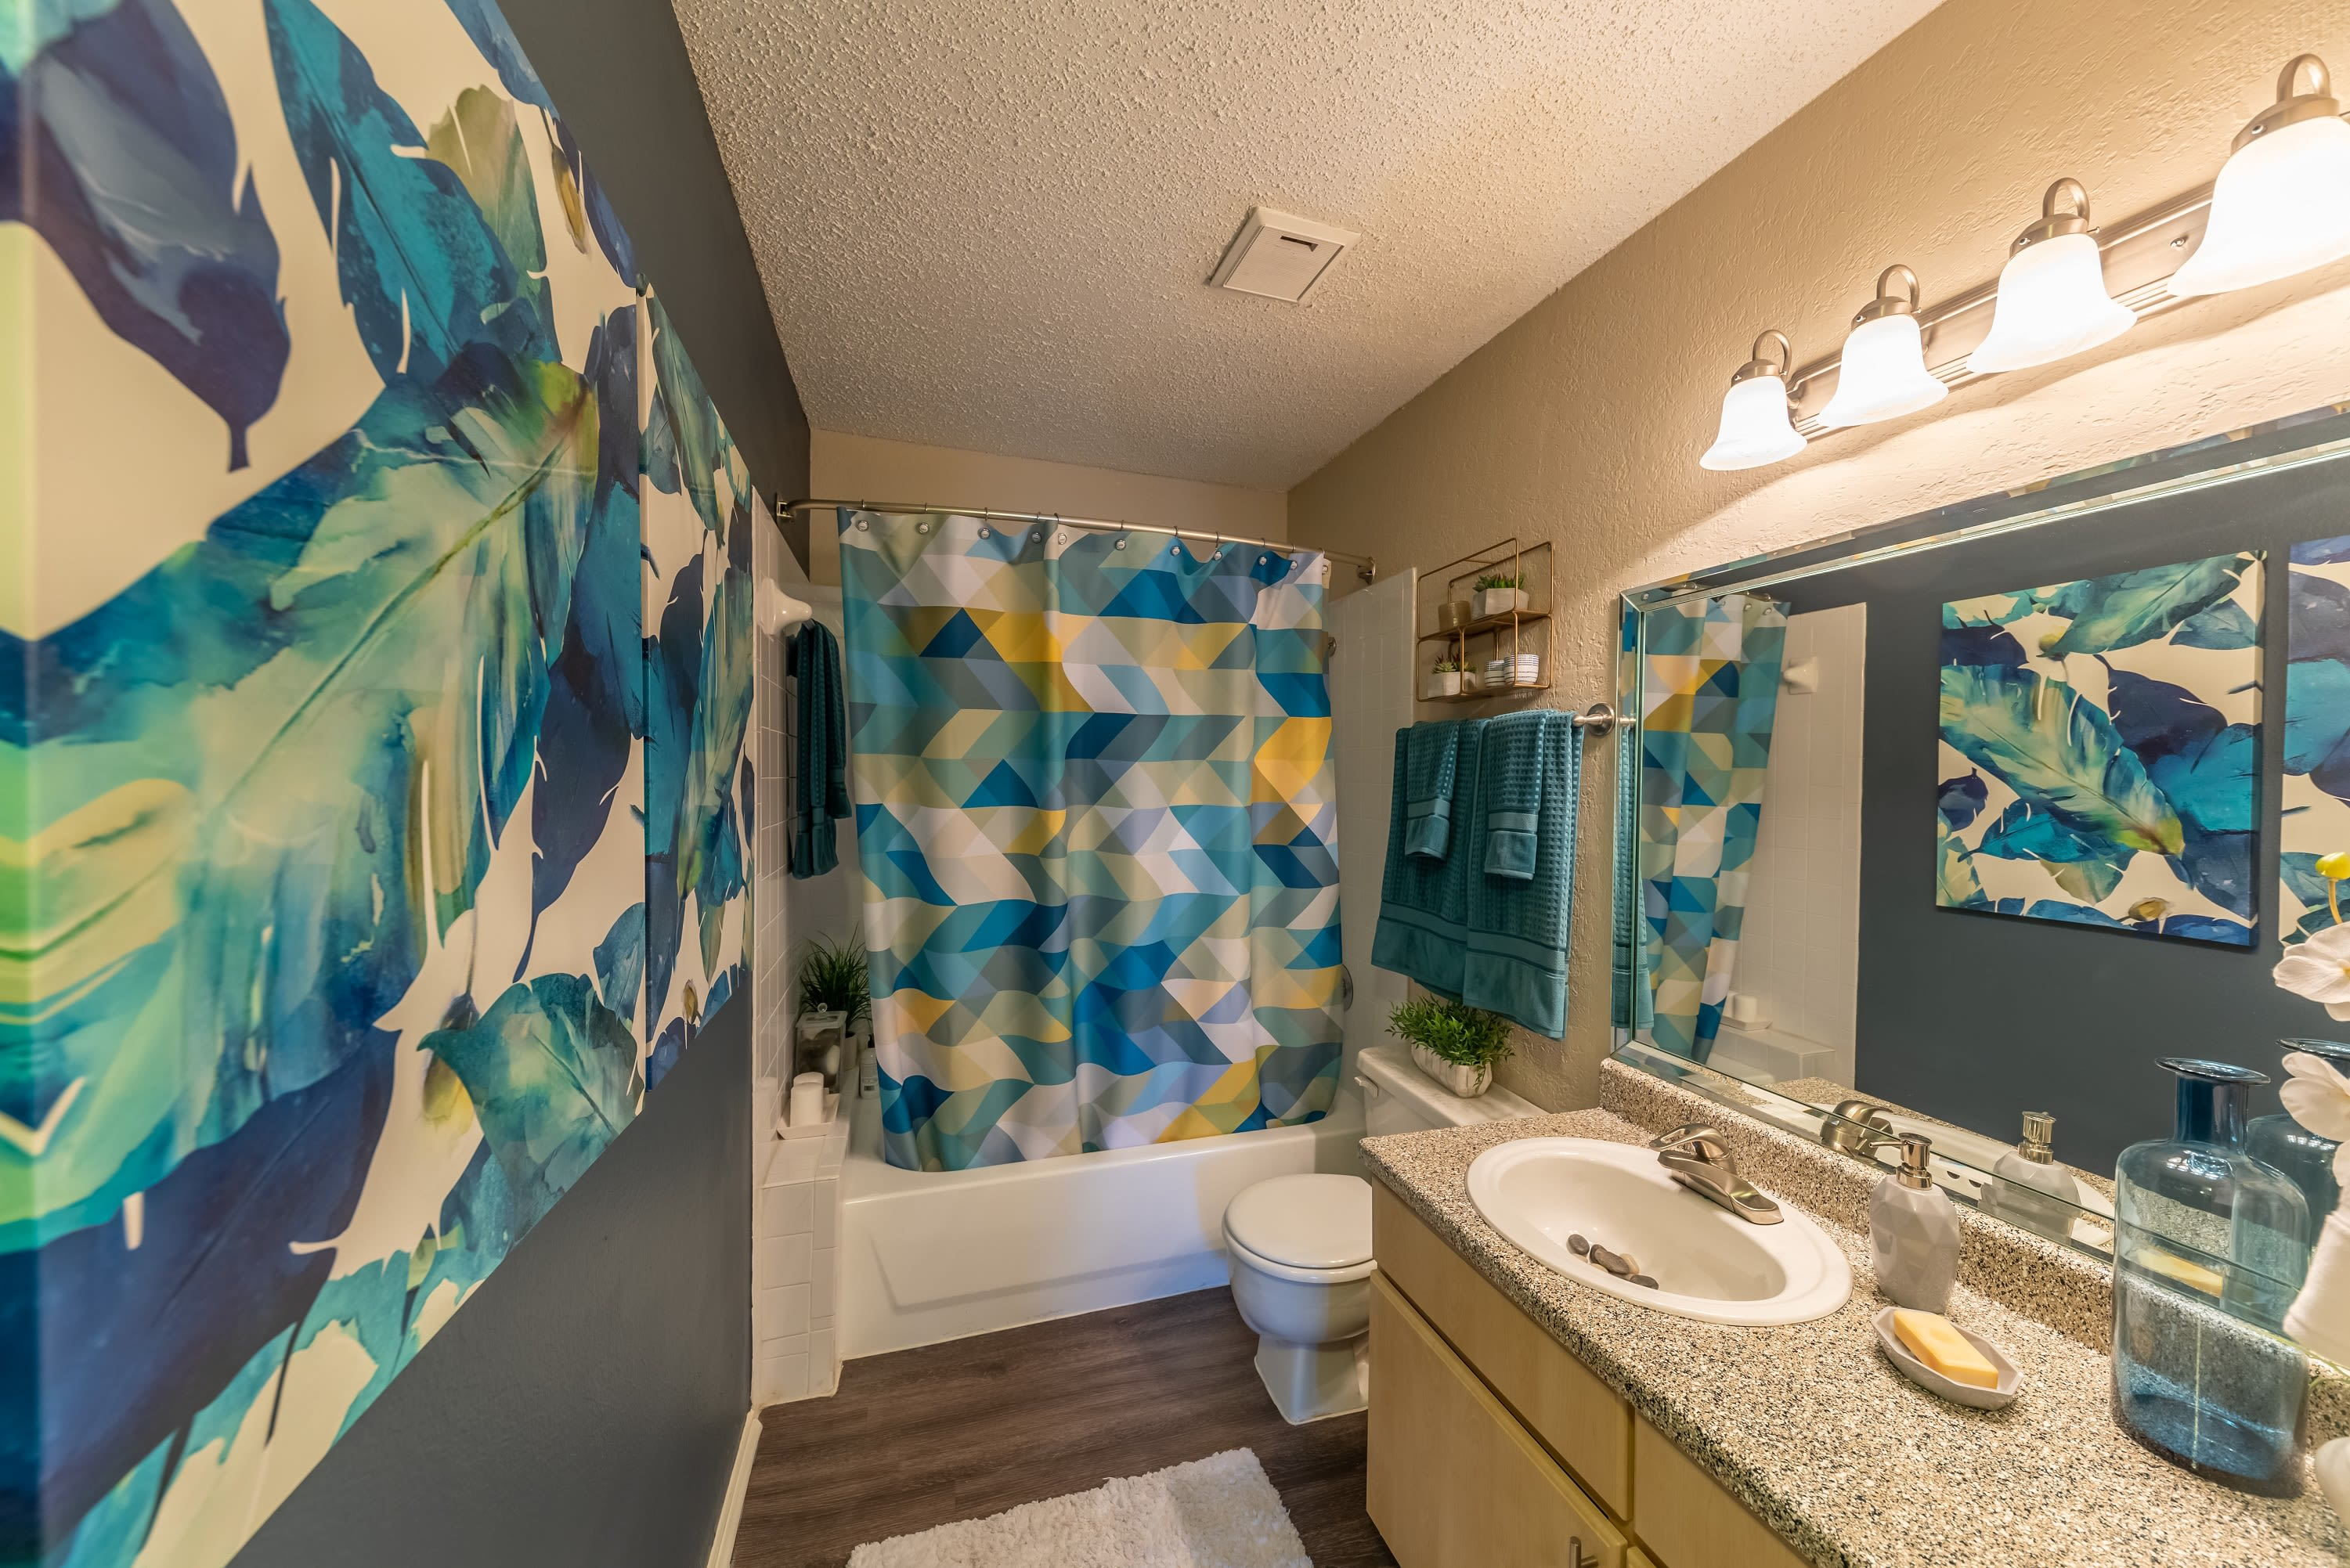 Model bathroom with large vanity mirror and oval tub at Village Green of Bear Creek in Euless, Texas